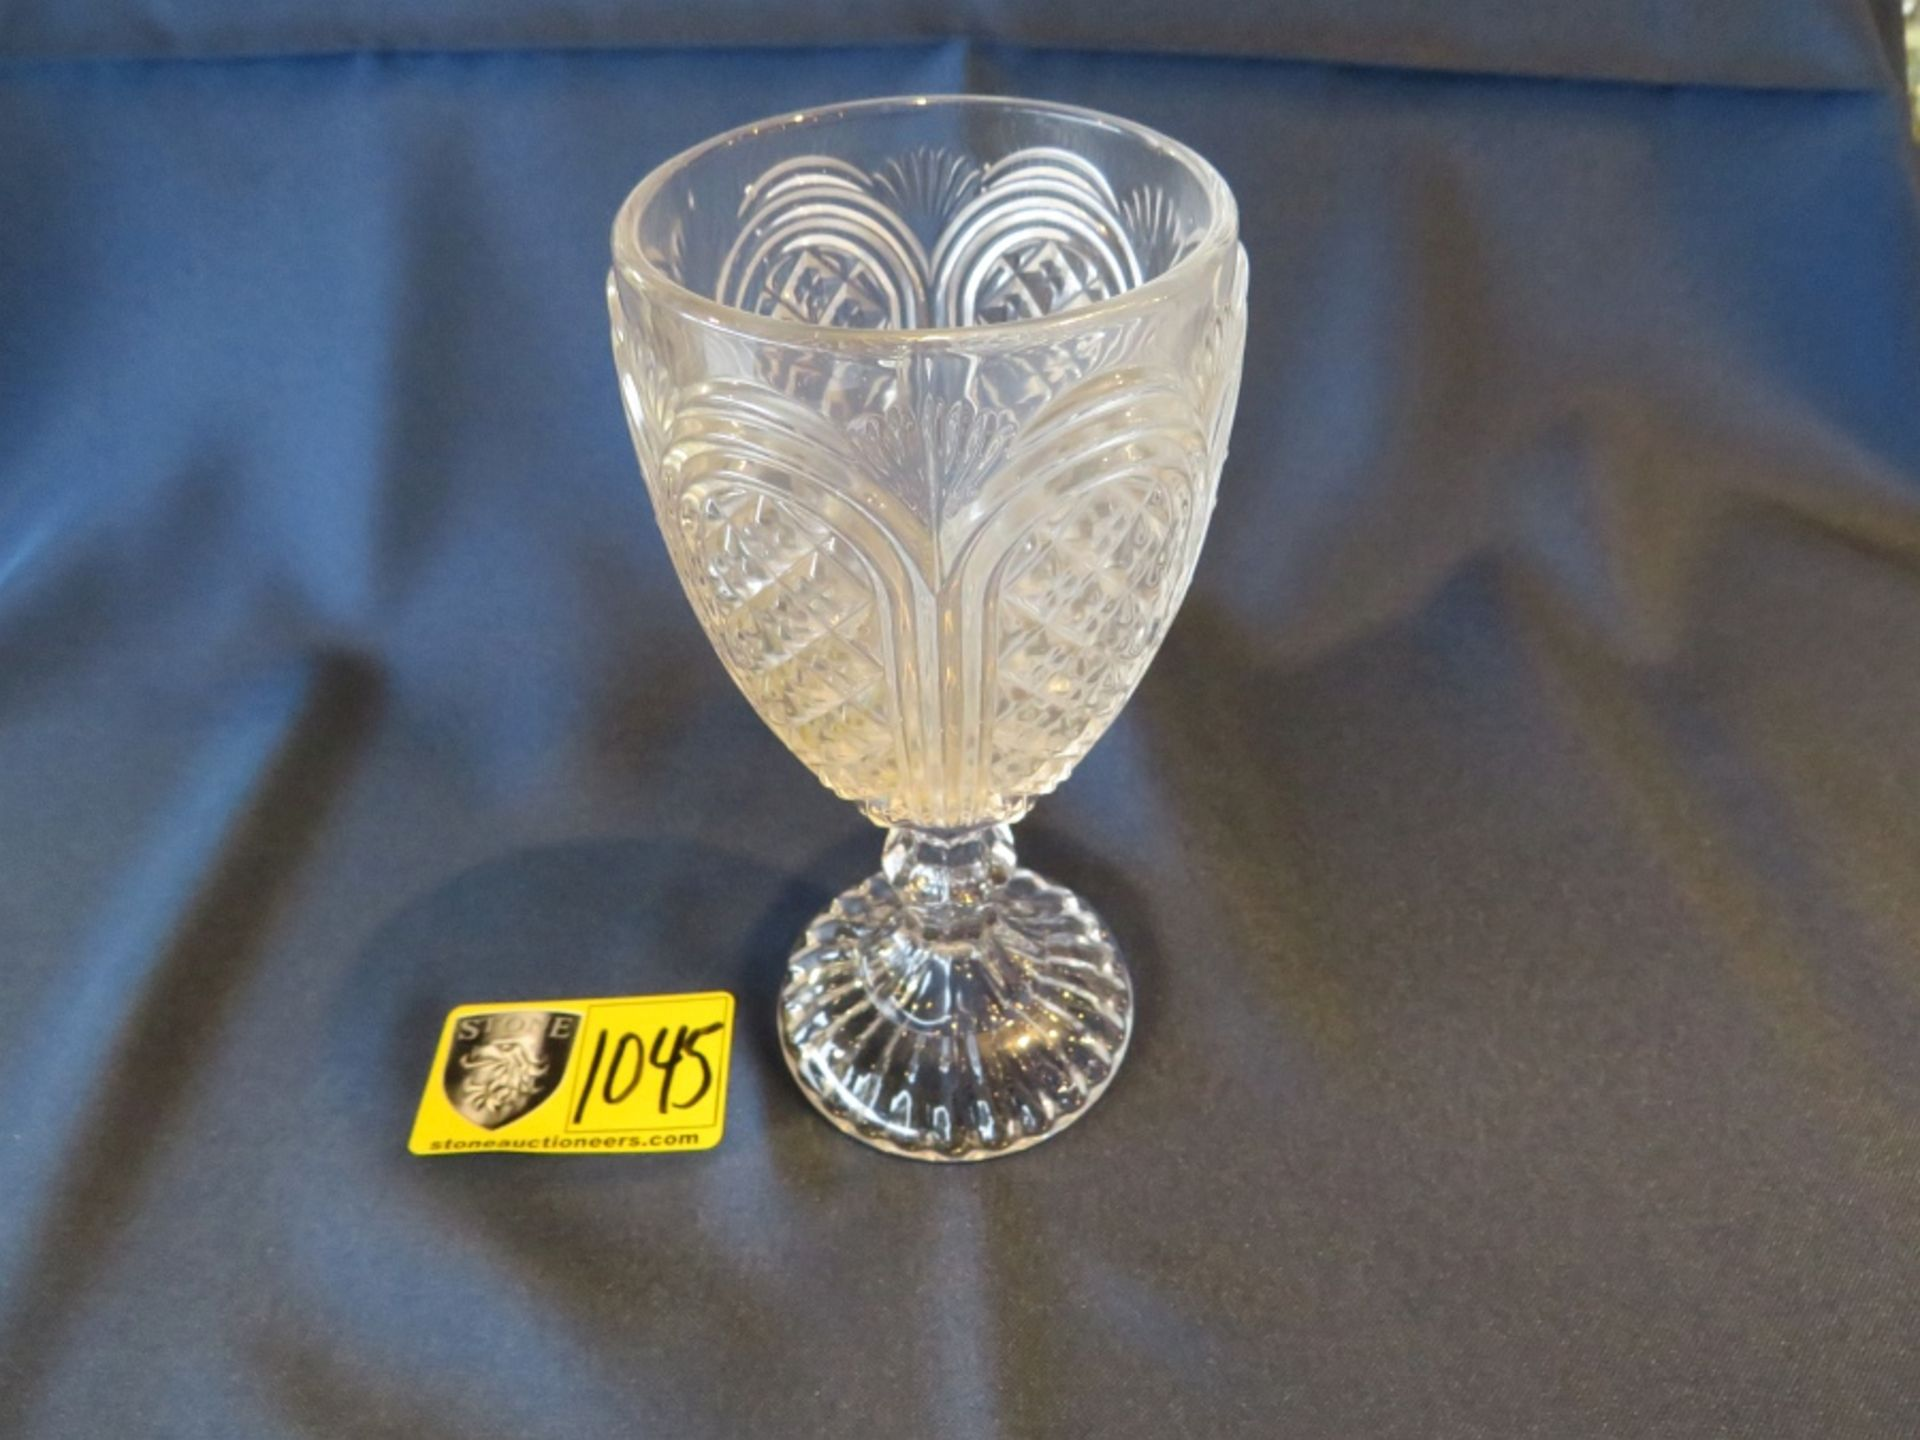 Lot 1045 - WATER GOBLET CAROUSEL GLASS ( Approx. 250 NEW in box)